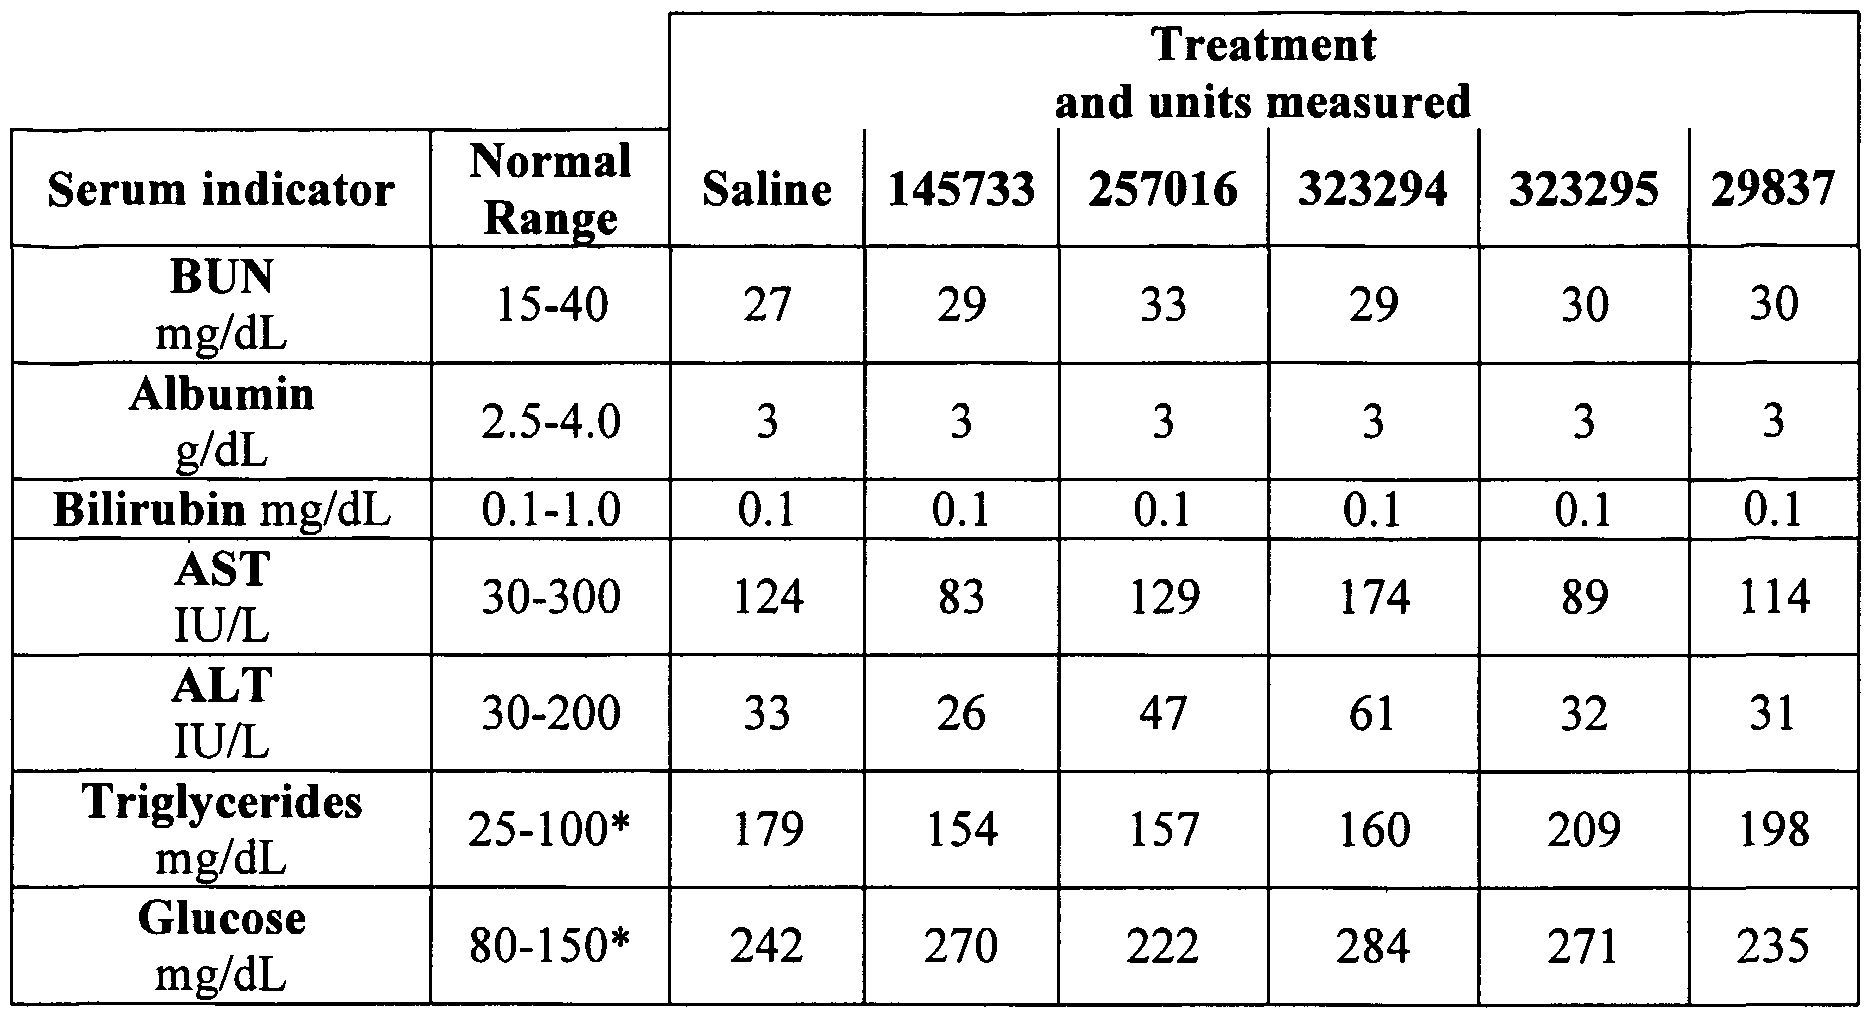 liver function tests table submited images